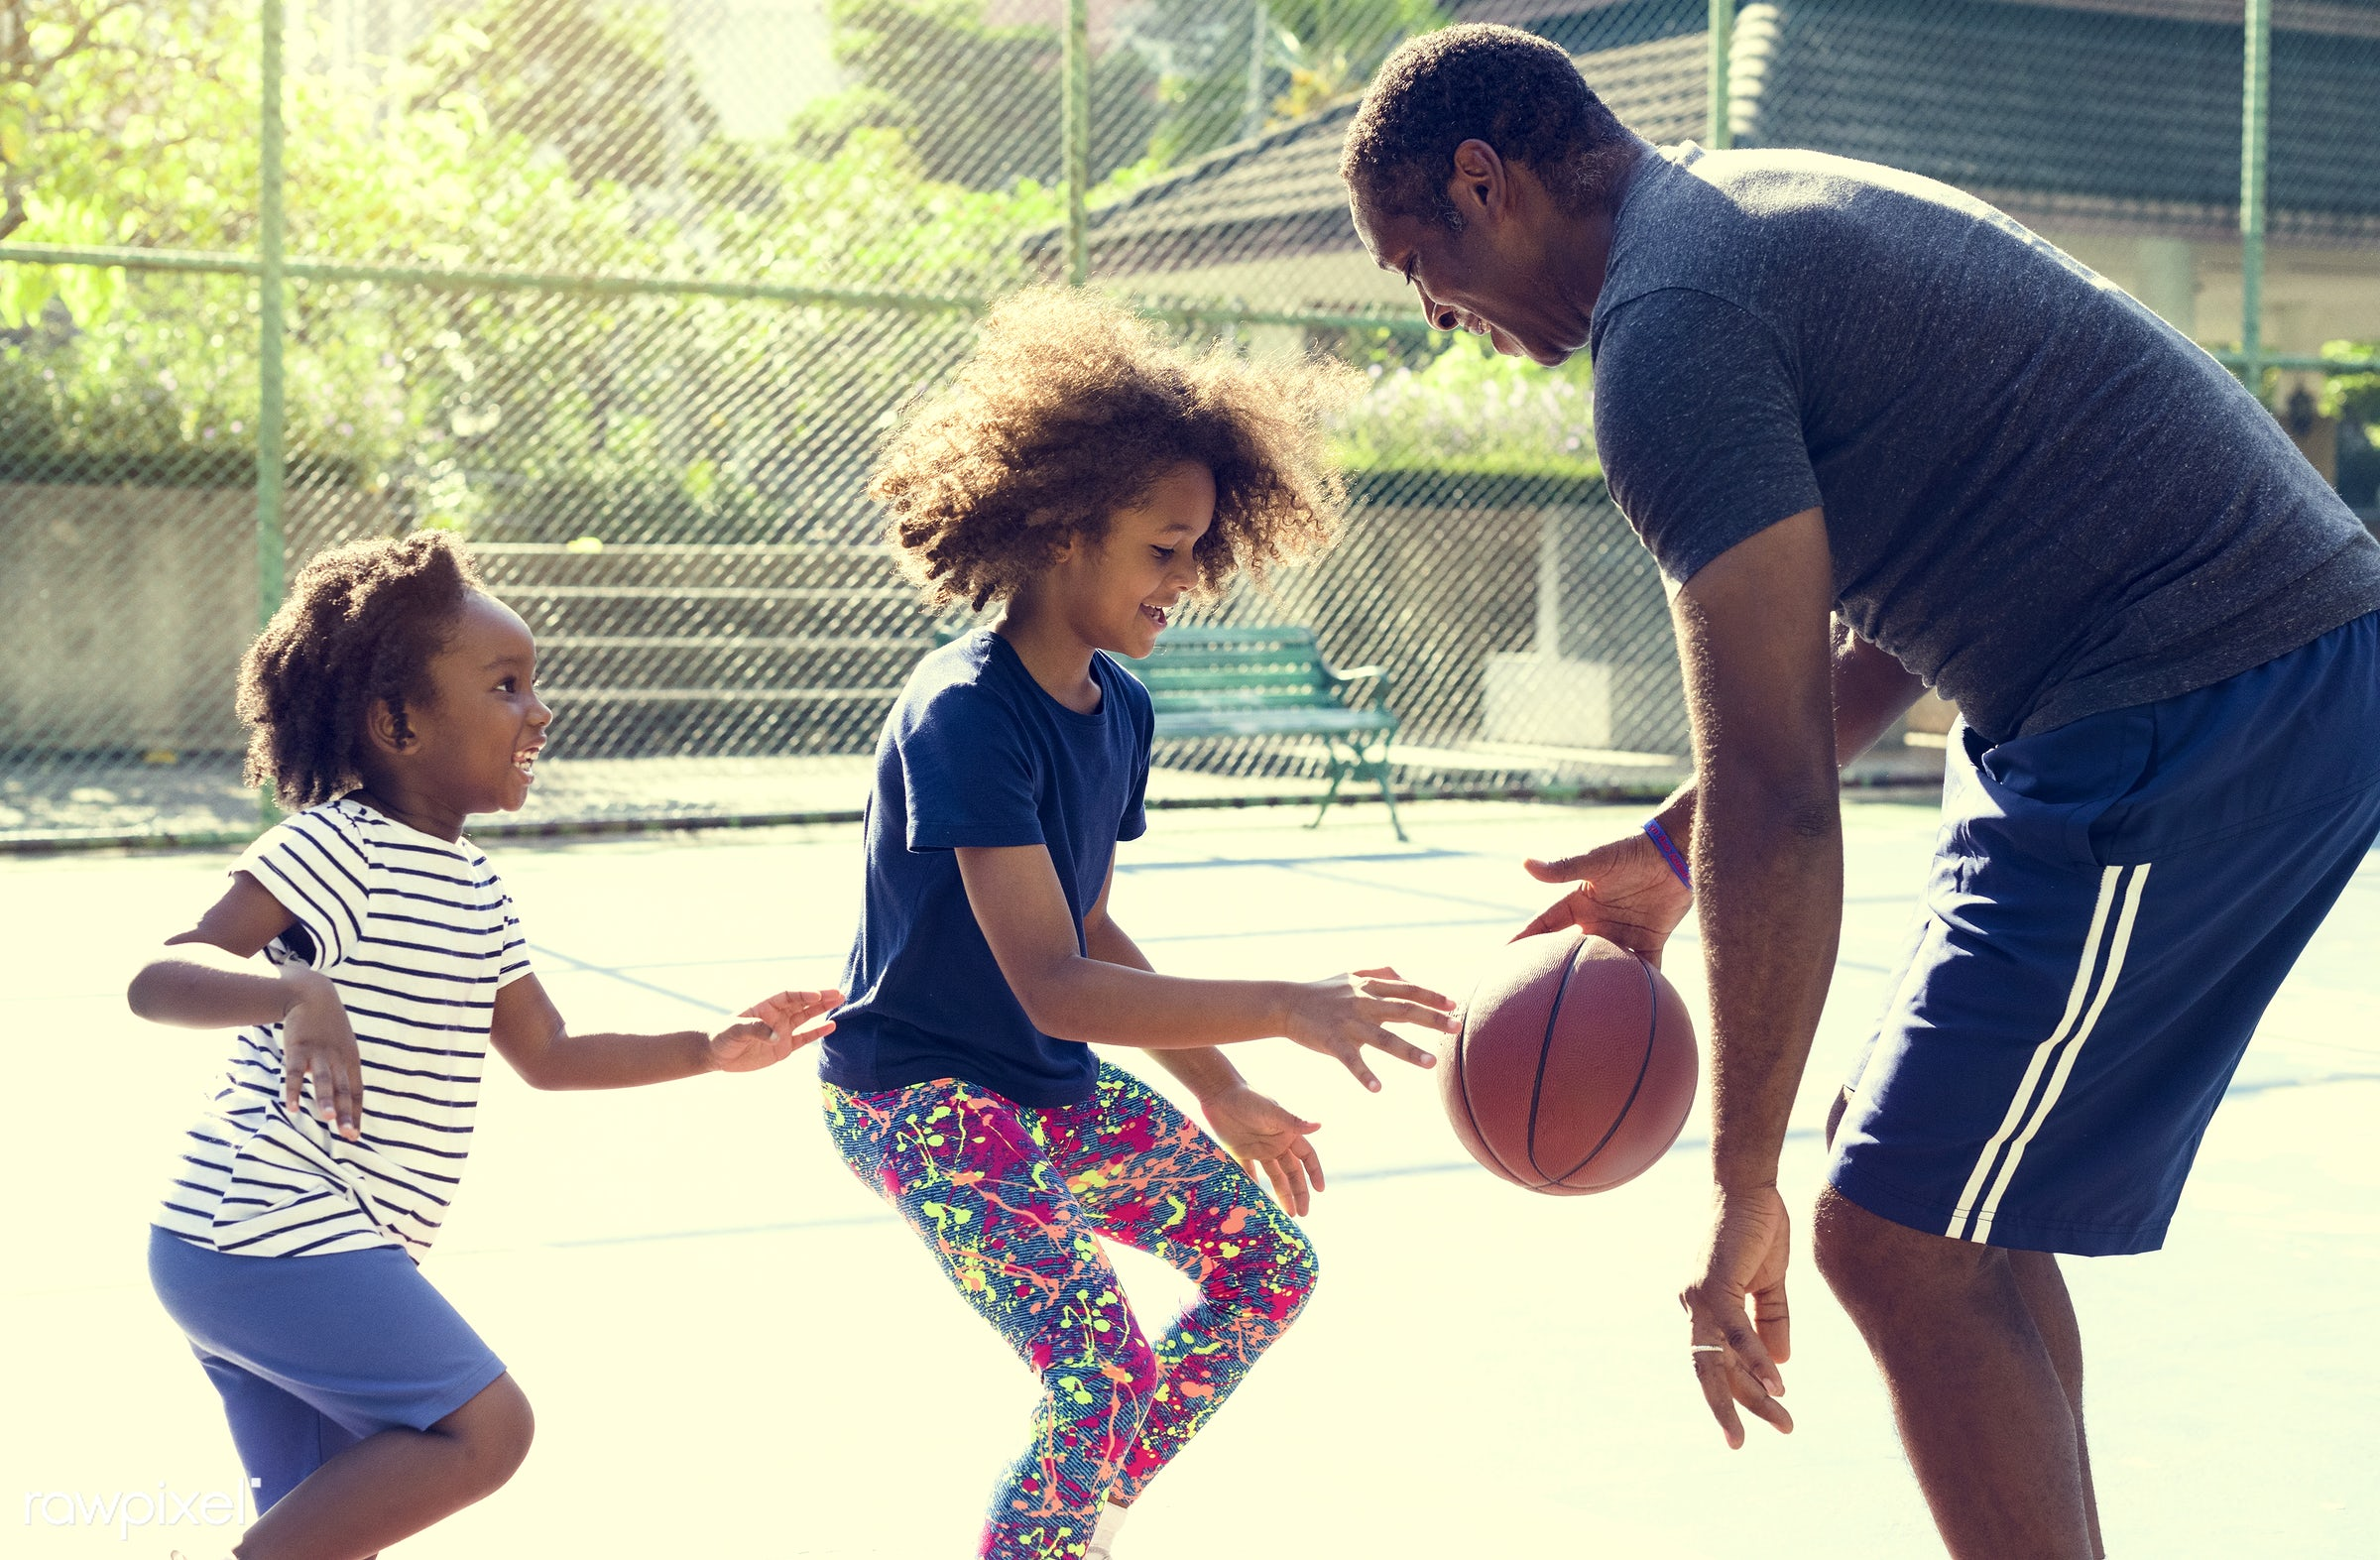 basketball, athletics, african, player, street, exercise, court, recreation, father, arena, family, activity, athlete, ball...